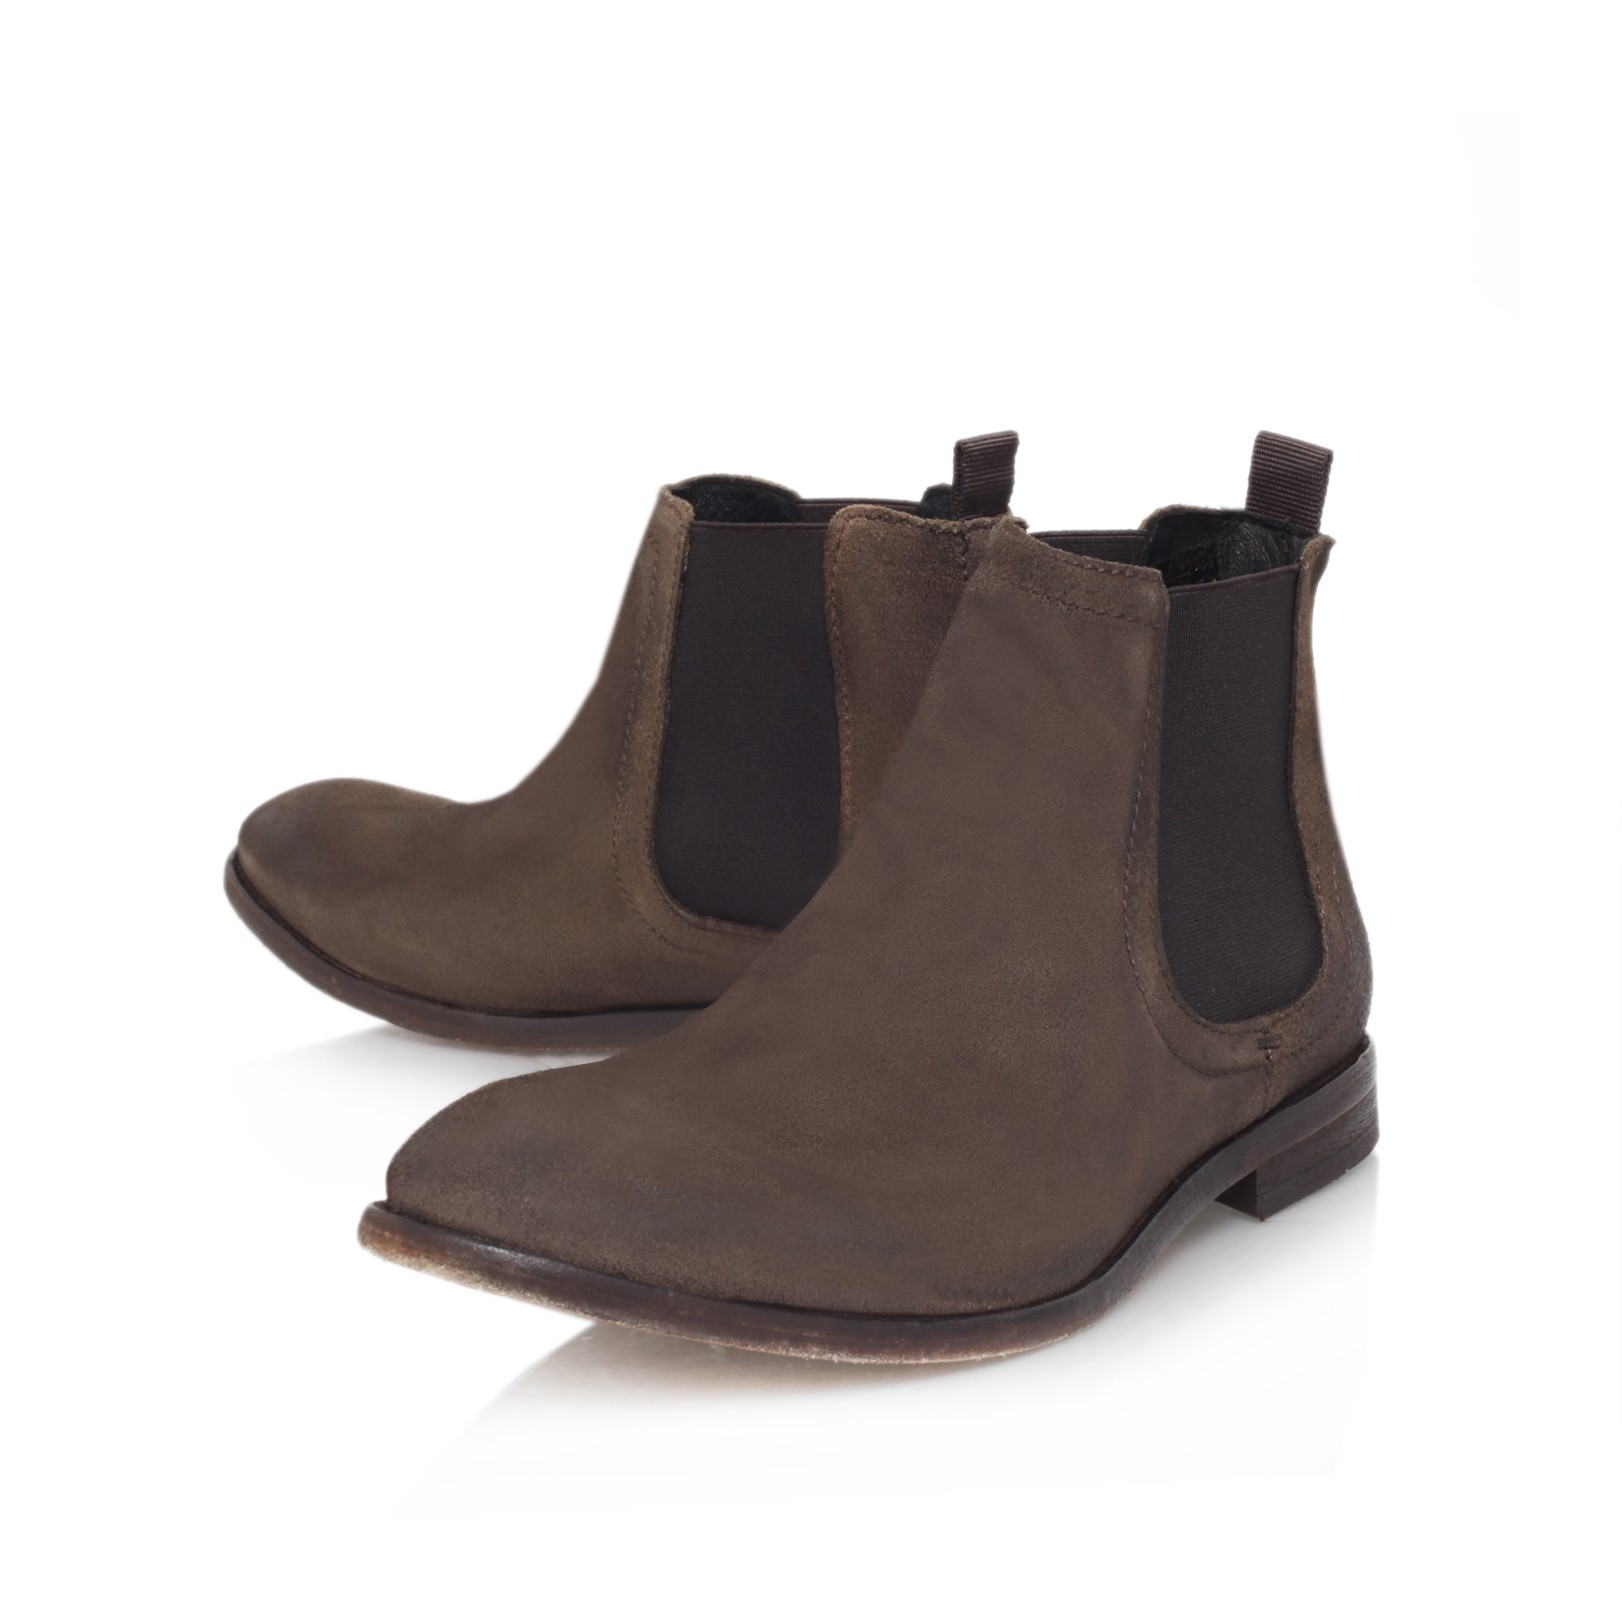 h by hudson patterson chelsea boot in brown for men taupe. Black Bedroom Furniture Sets. Home Design Ideas